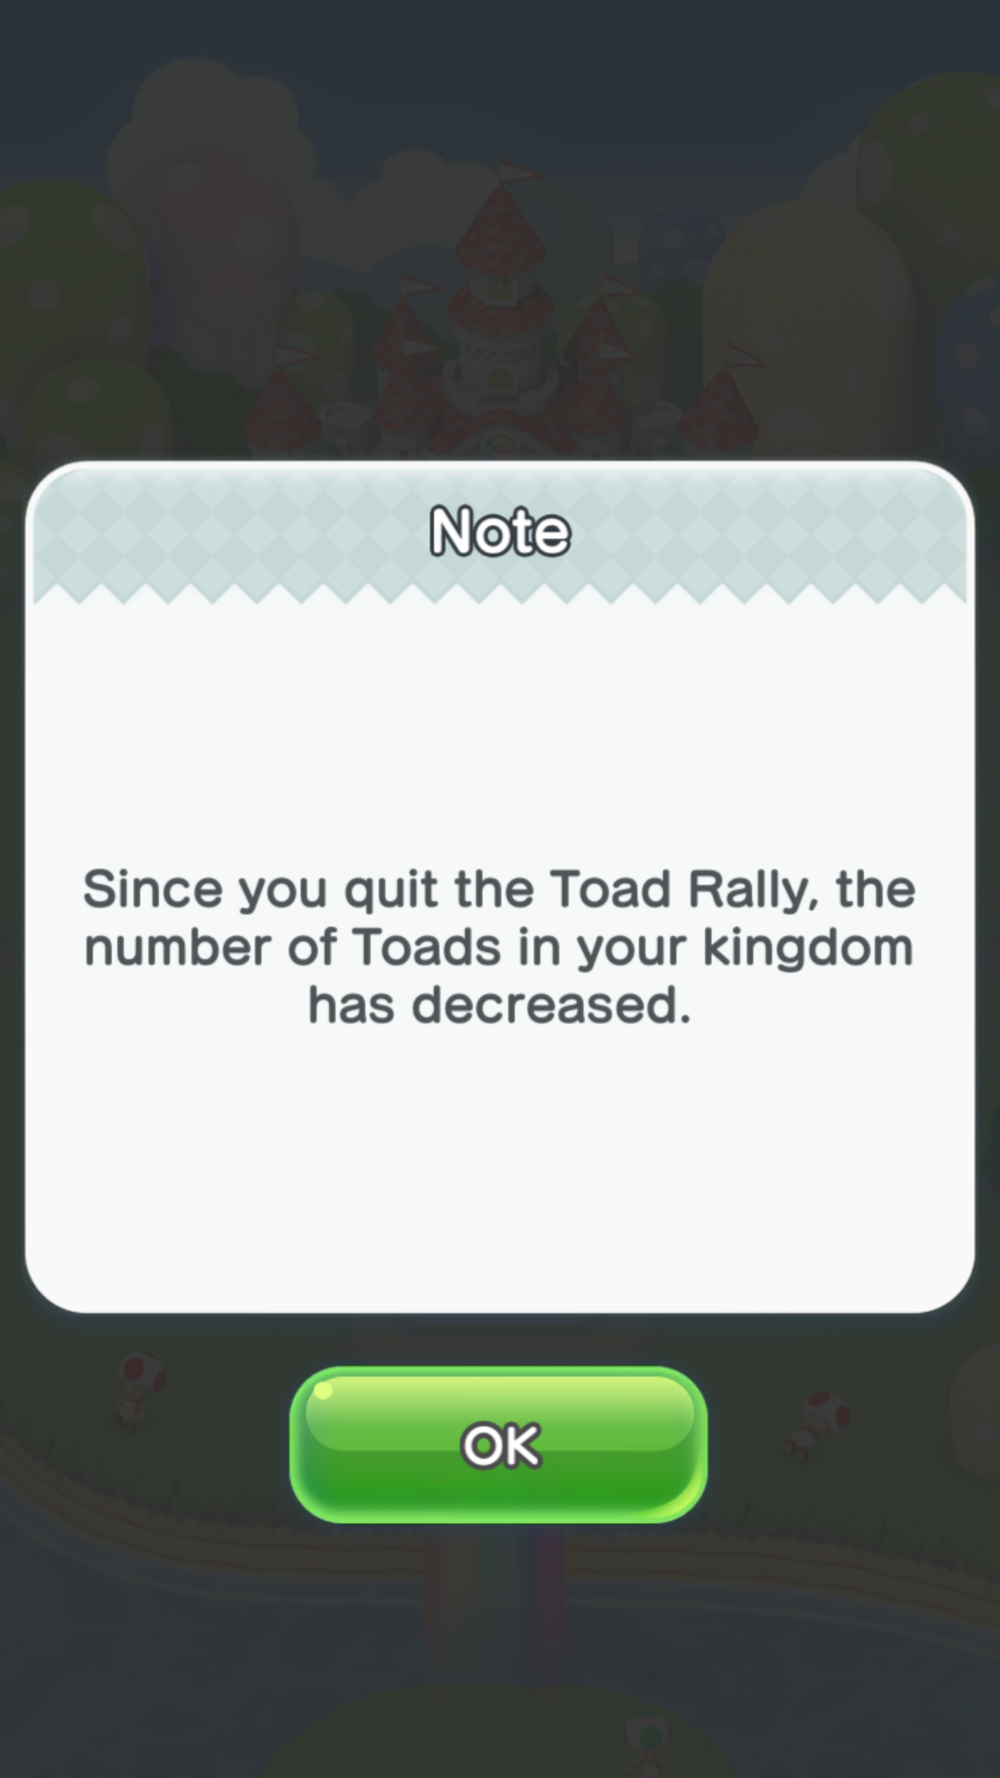 The game penalizes you for quitting Toad Rallies by deducting some toads from your total Toad count. This feels unfair because the game punishes people don't treat their phones like dedicated consoles. A Toad Rally save system should have been implemented.